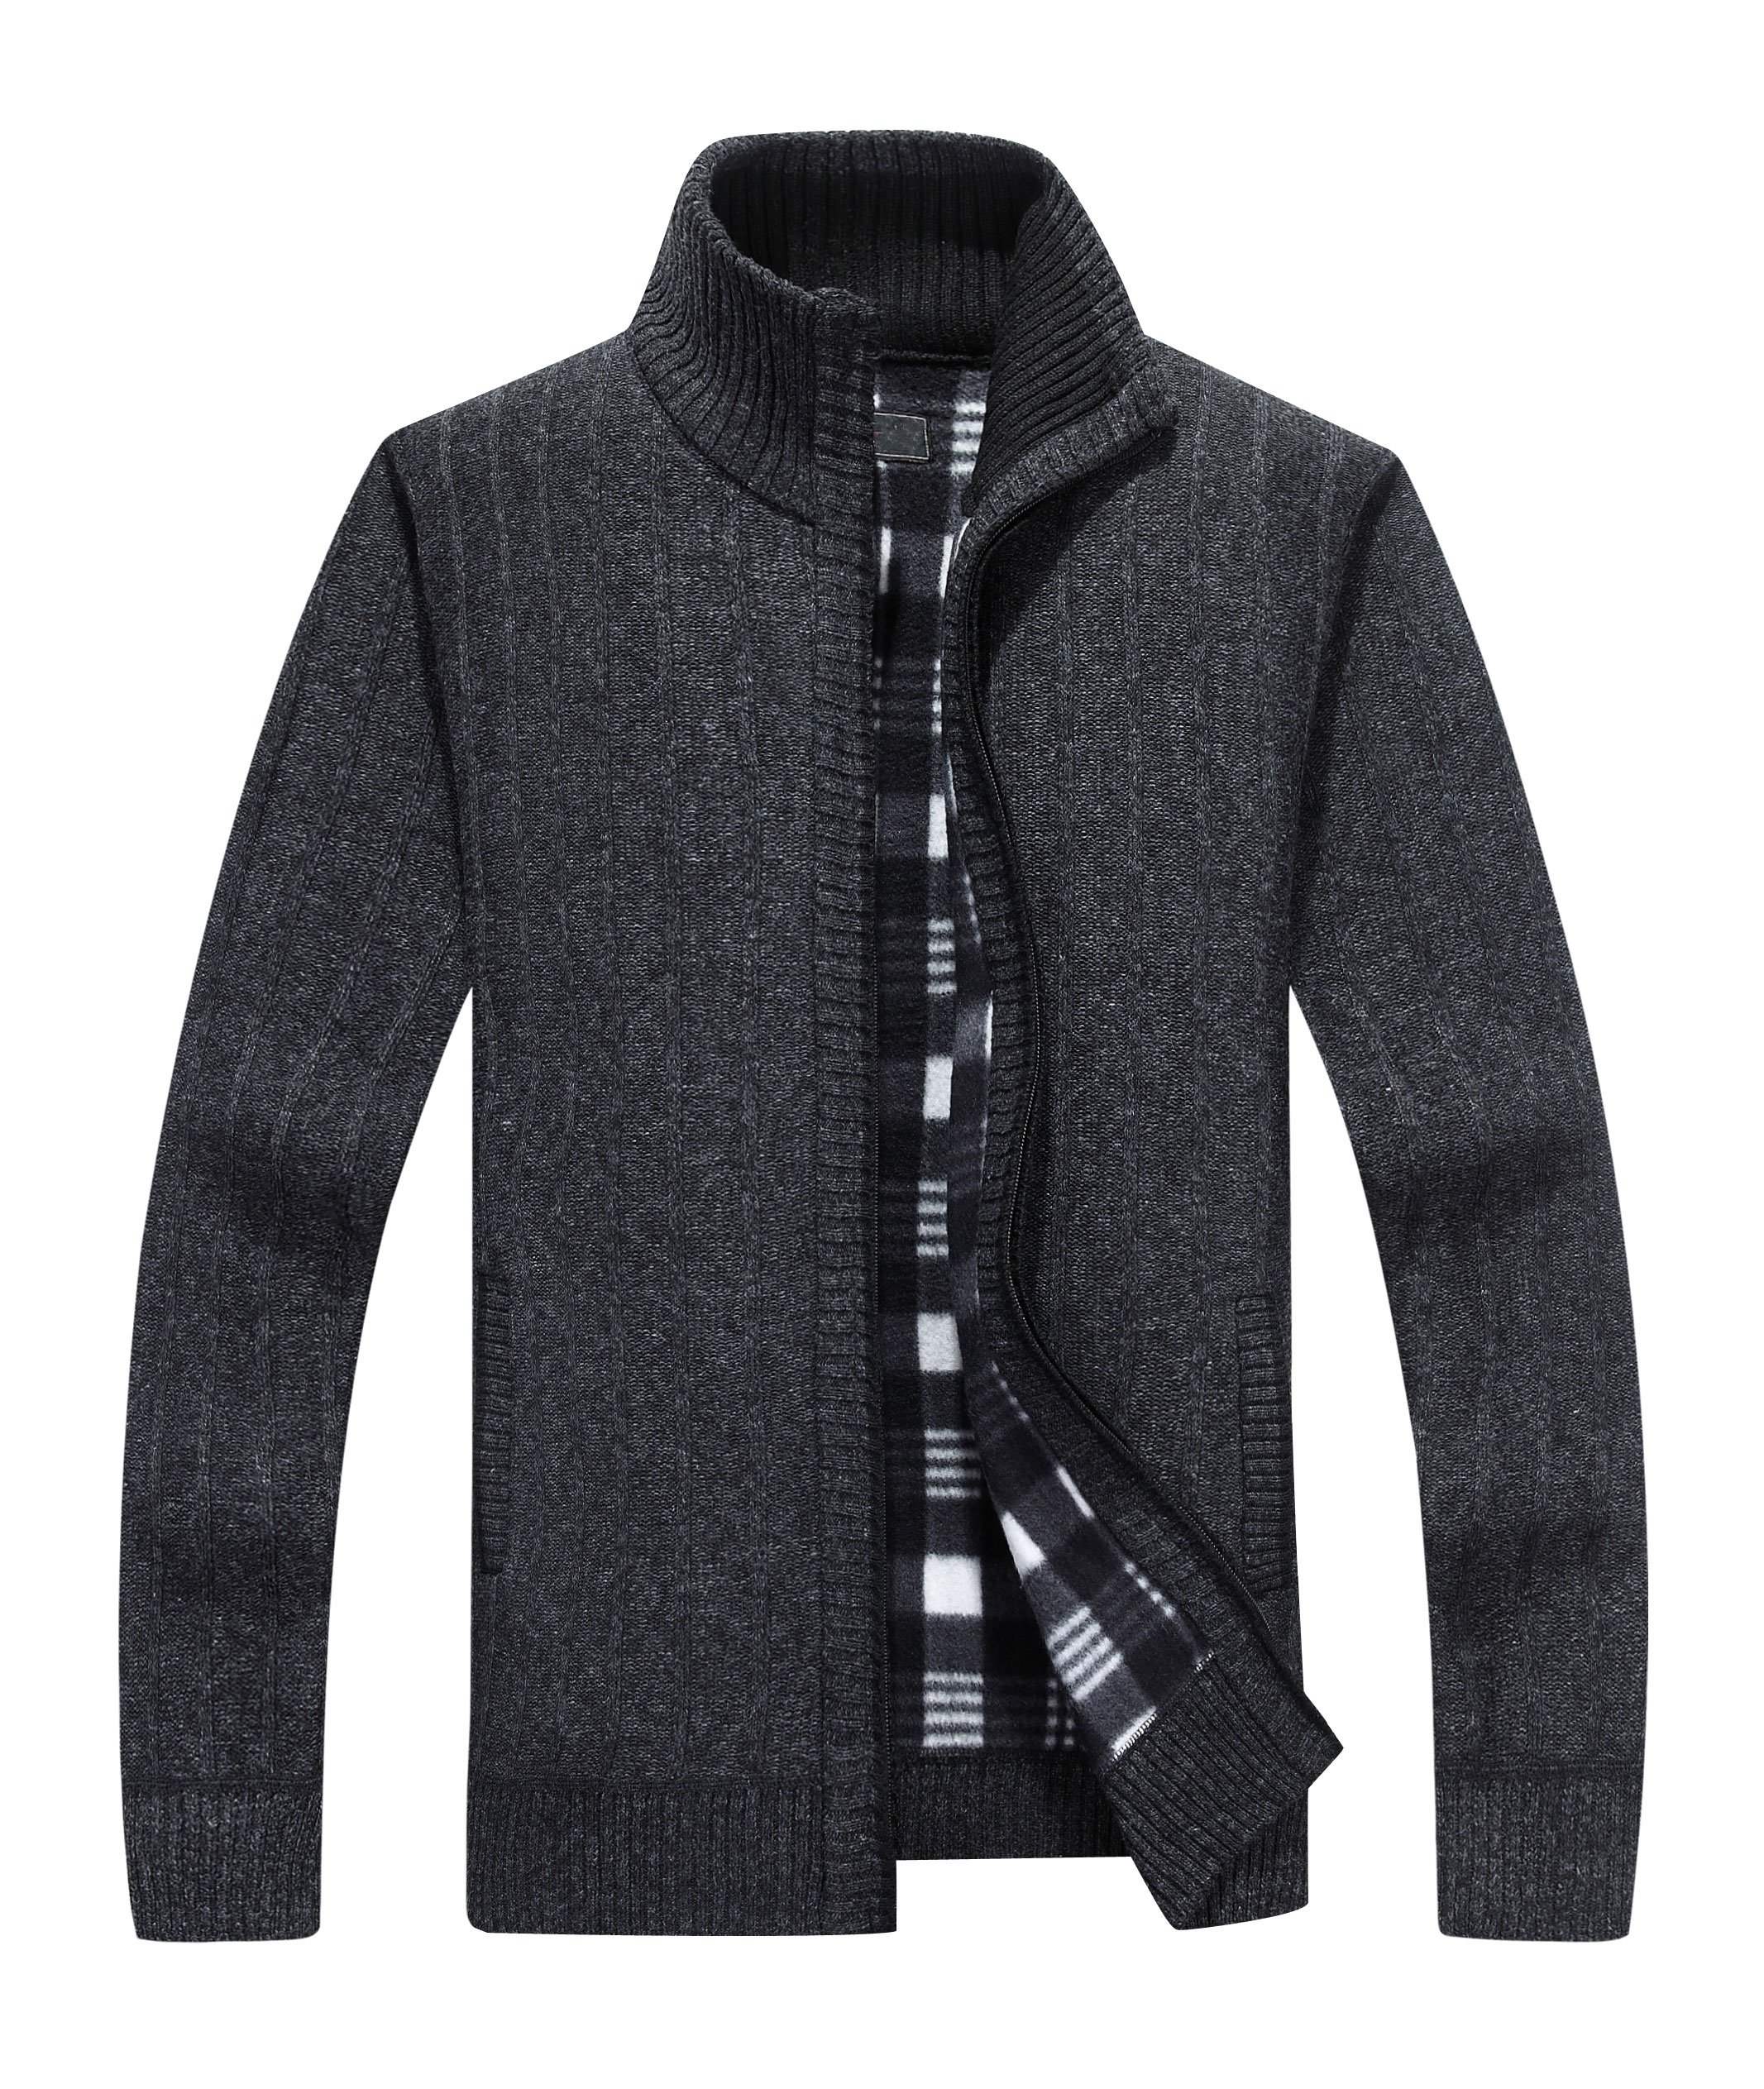 Yeokou Men's Casual Slim Fit Full Zip Thick Knit Cardigan Sweaters with Pockets (X-Large, Black001)